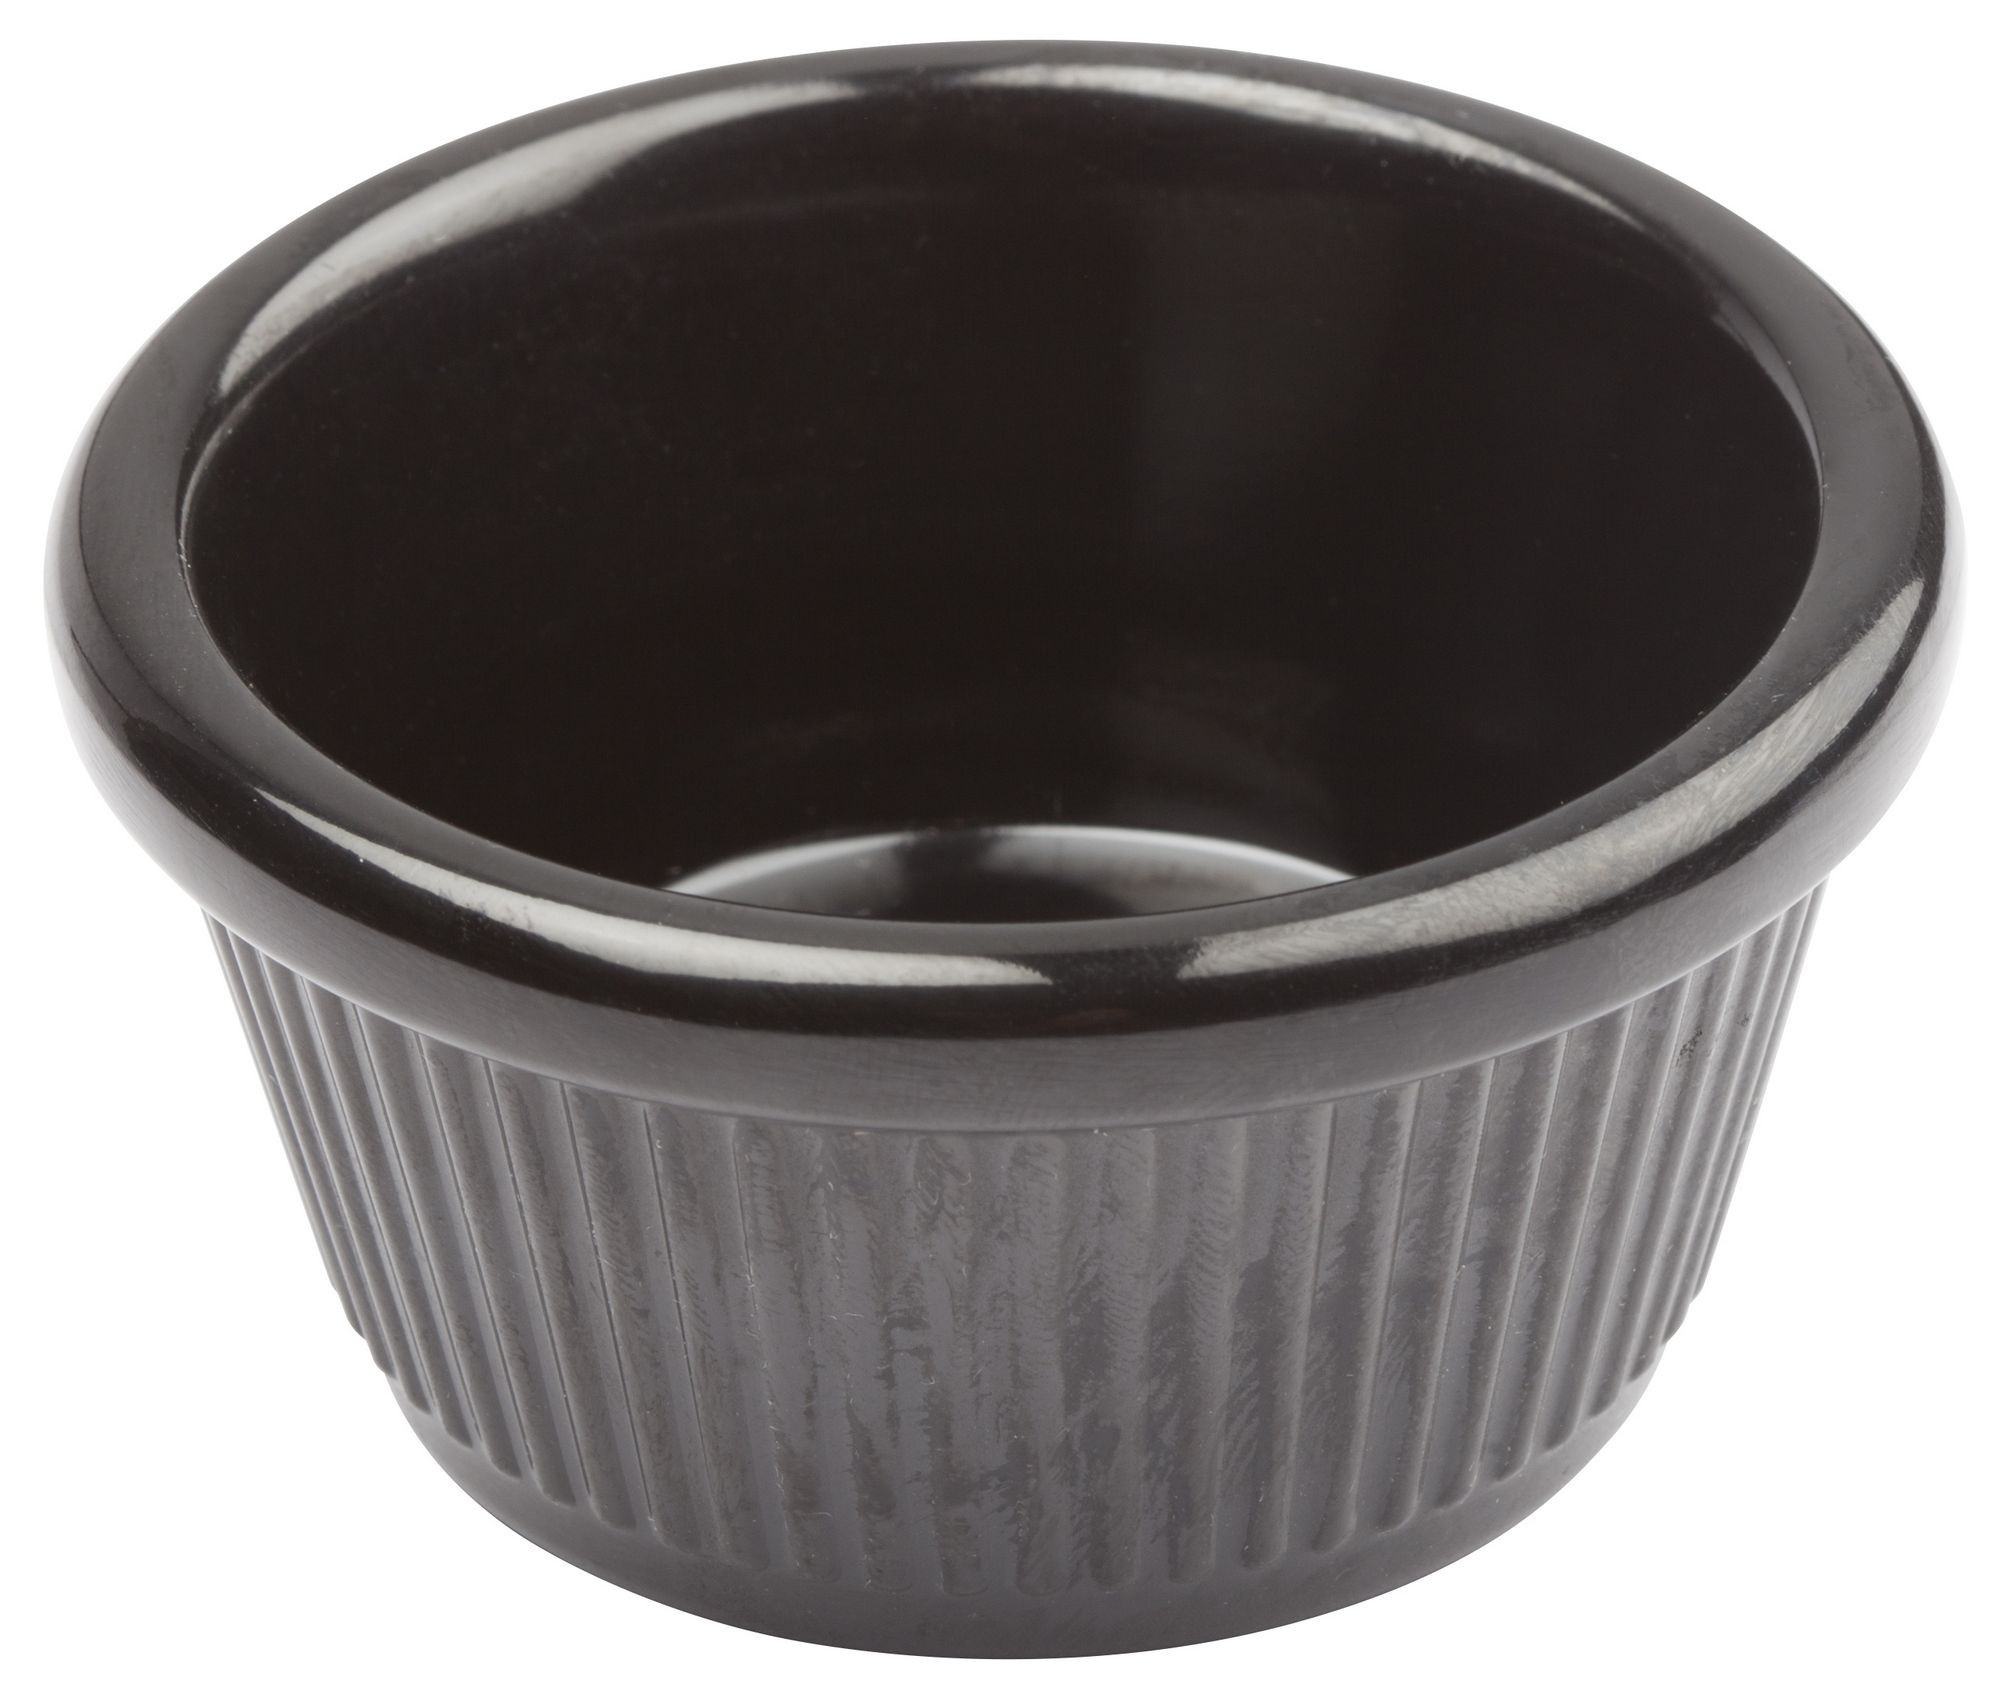 Winco rfm-4k 4 oz. Fluted Black Melamine Ramekin